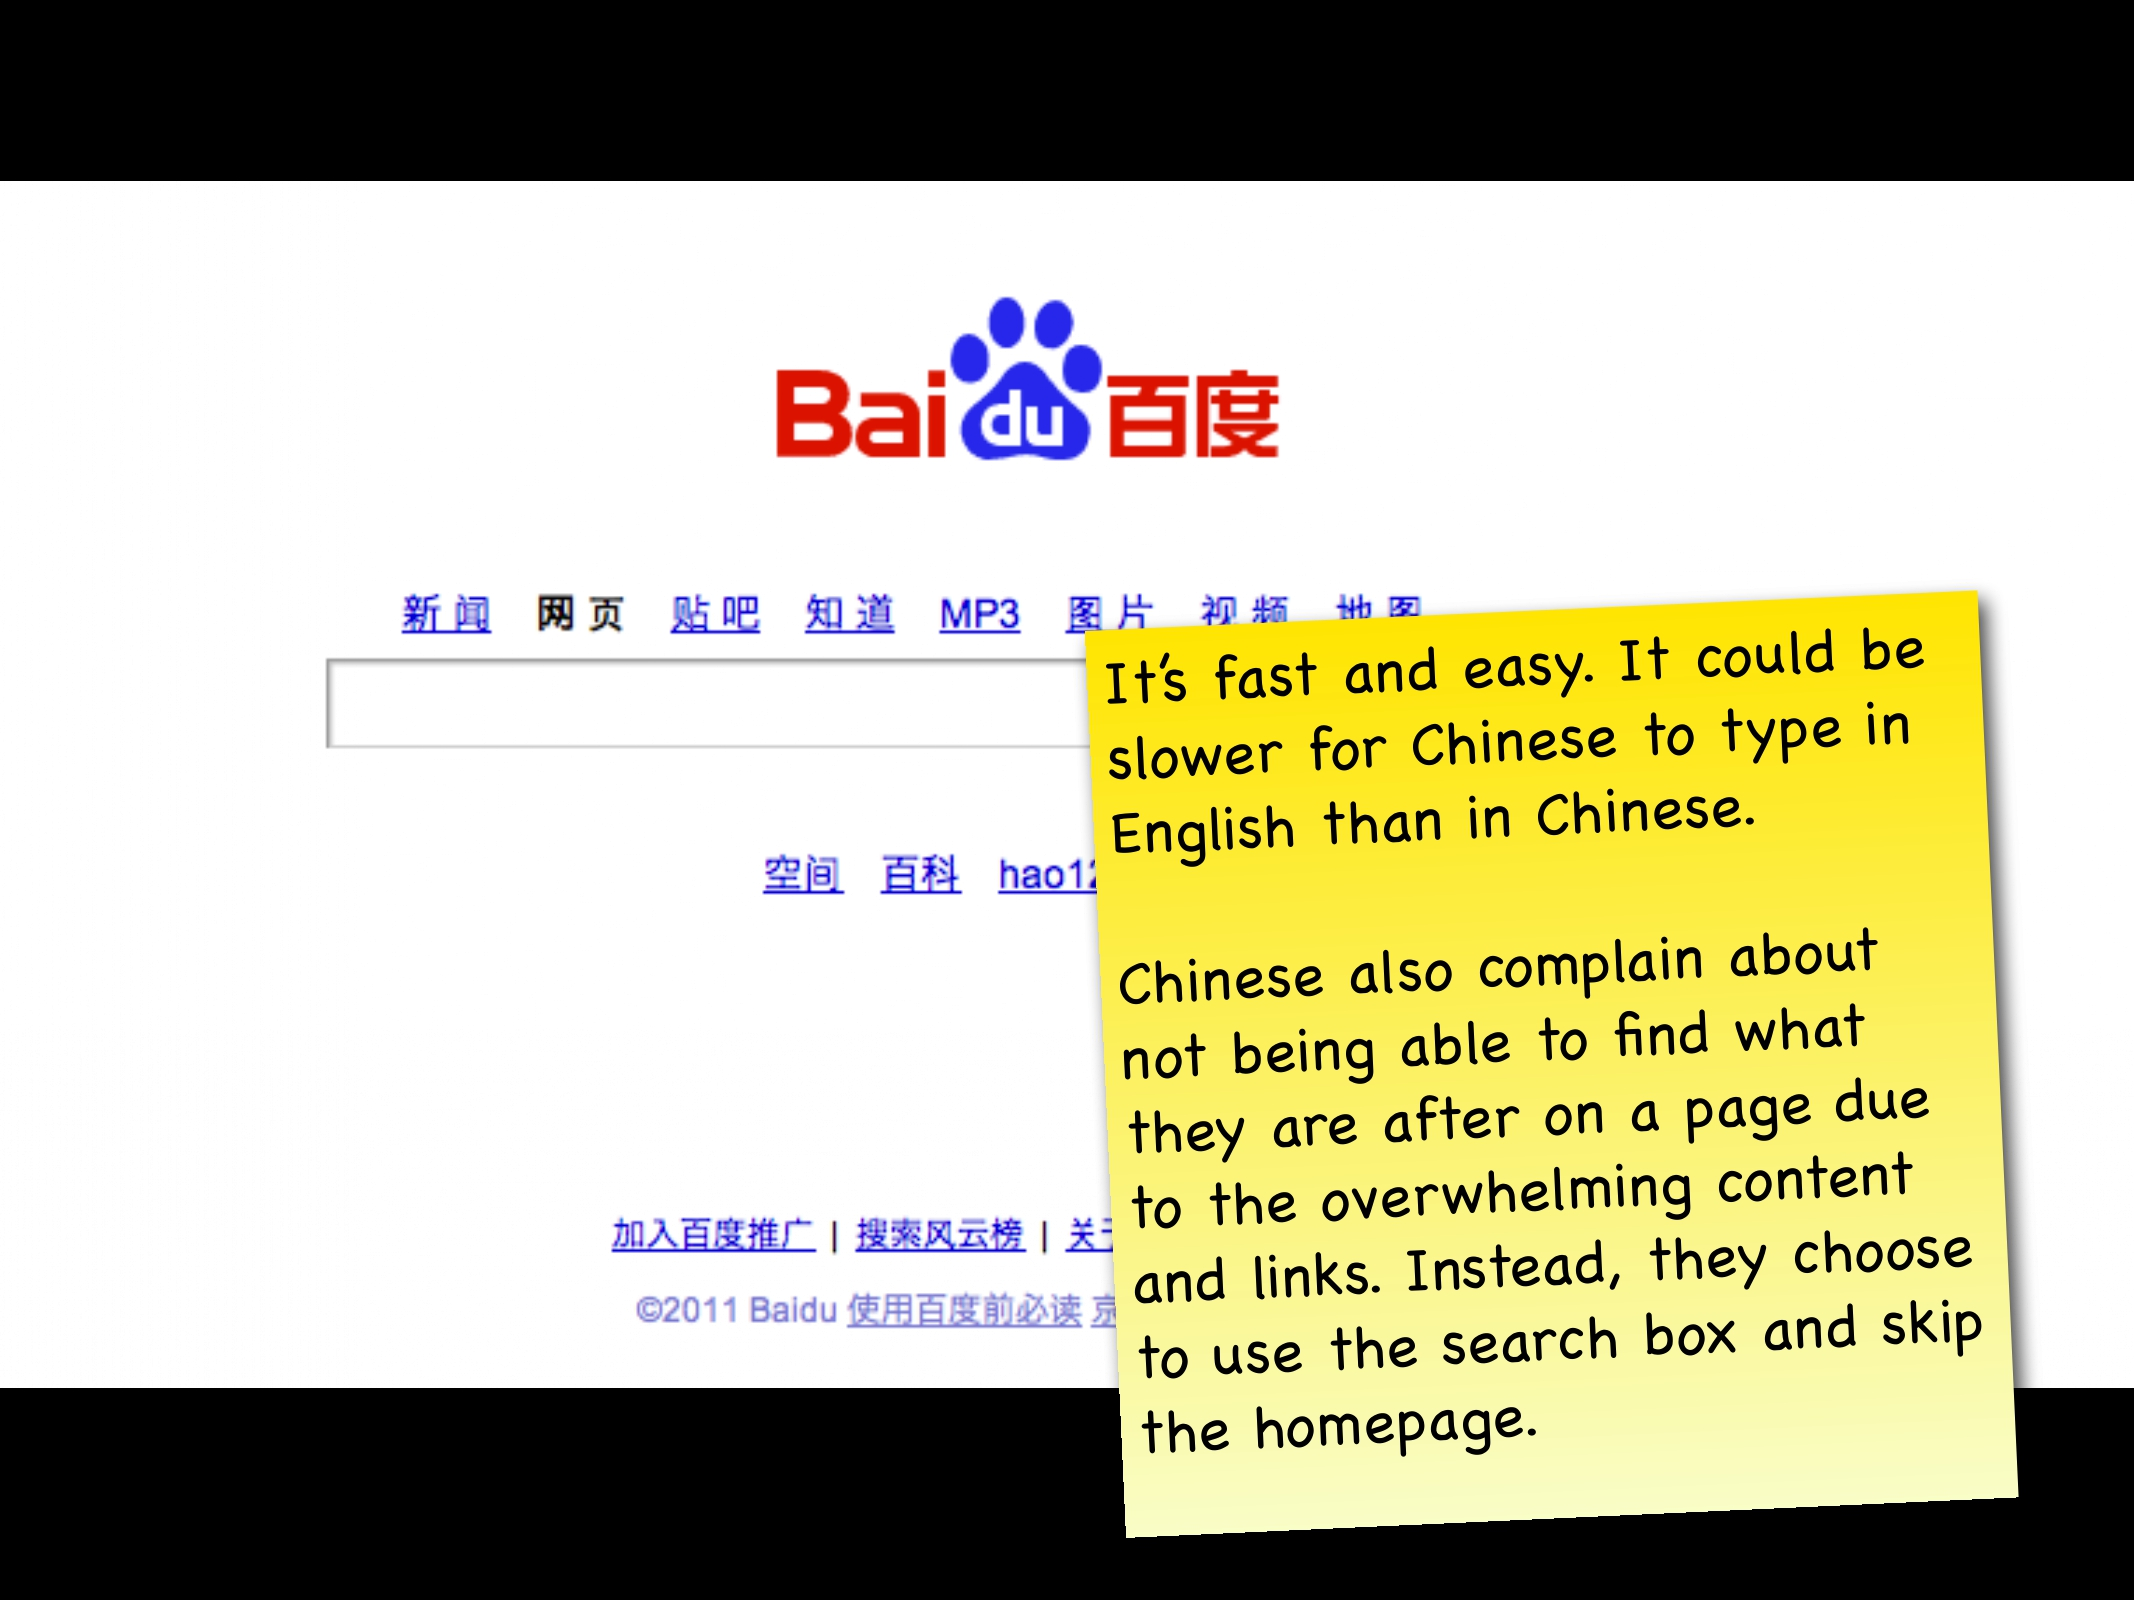 Chinese Web Design Patterns 2011_pages-to-jpg-0025.jpg